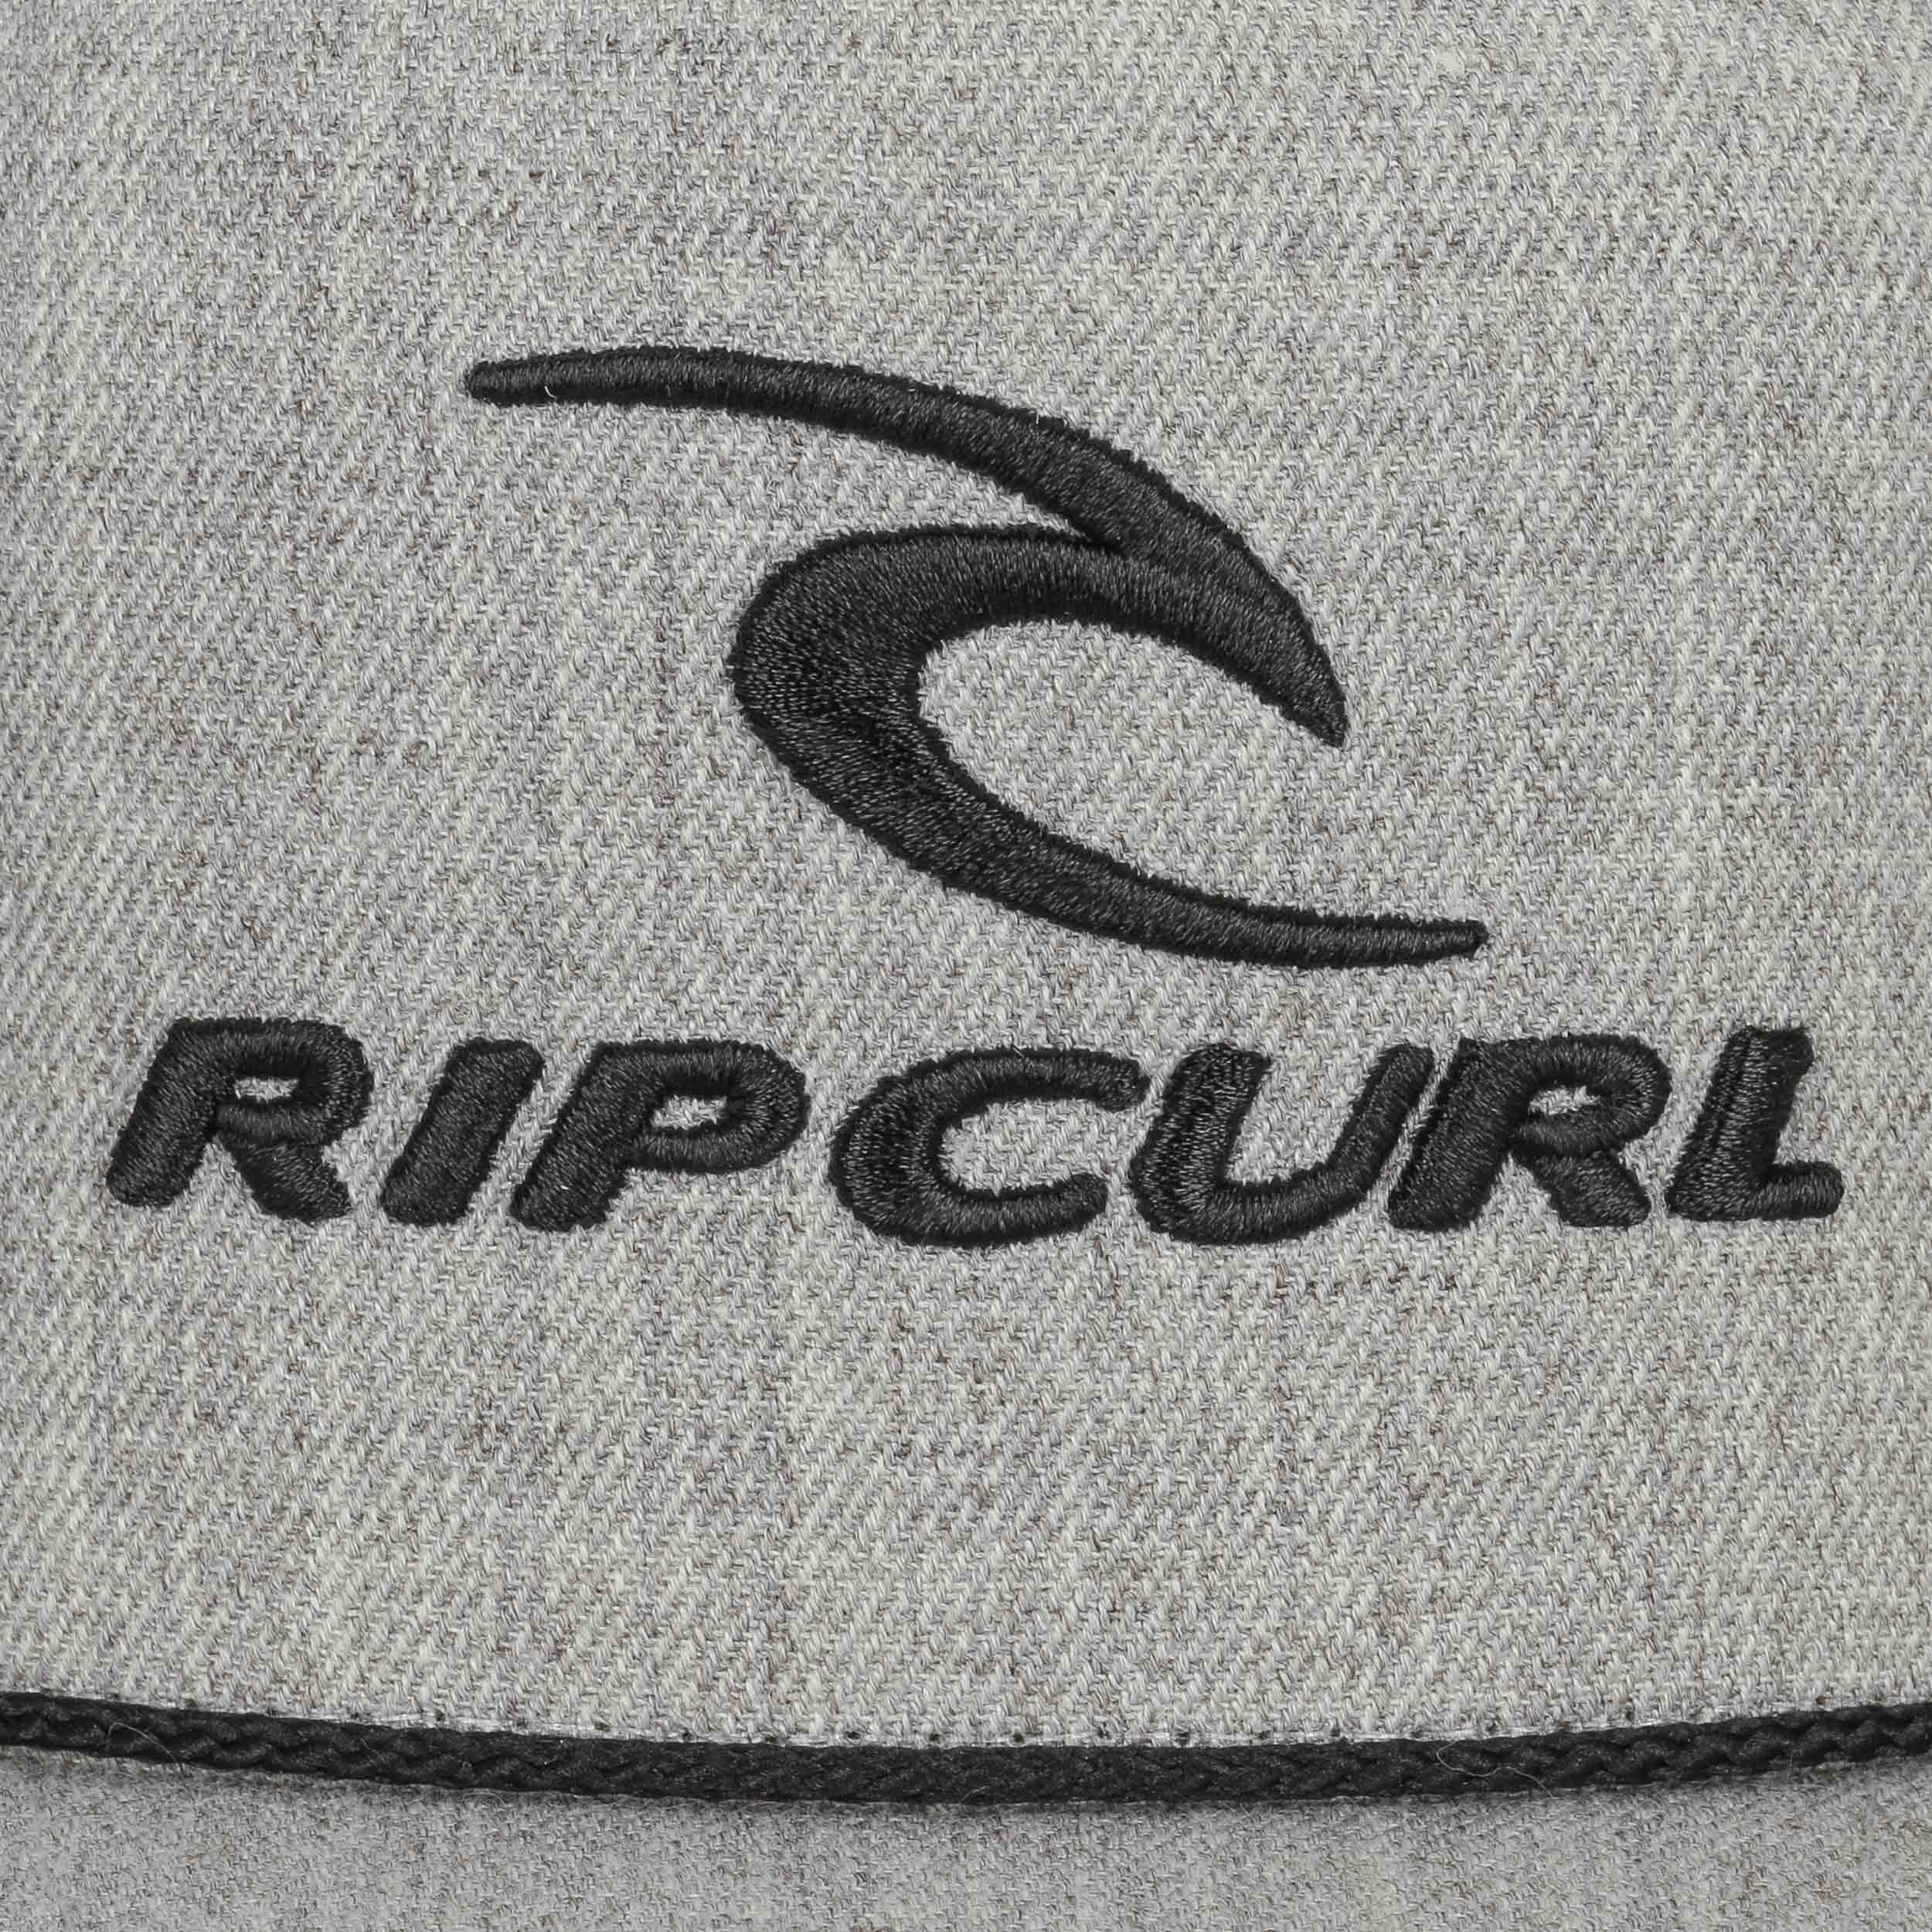 ... Rippy Team Trucker Cap by Rip Curl - hellgrau 5 ... ba47918ef0d3